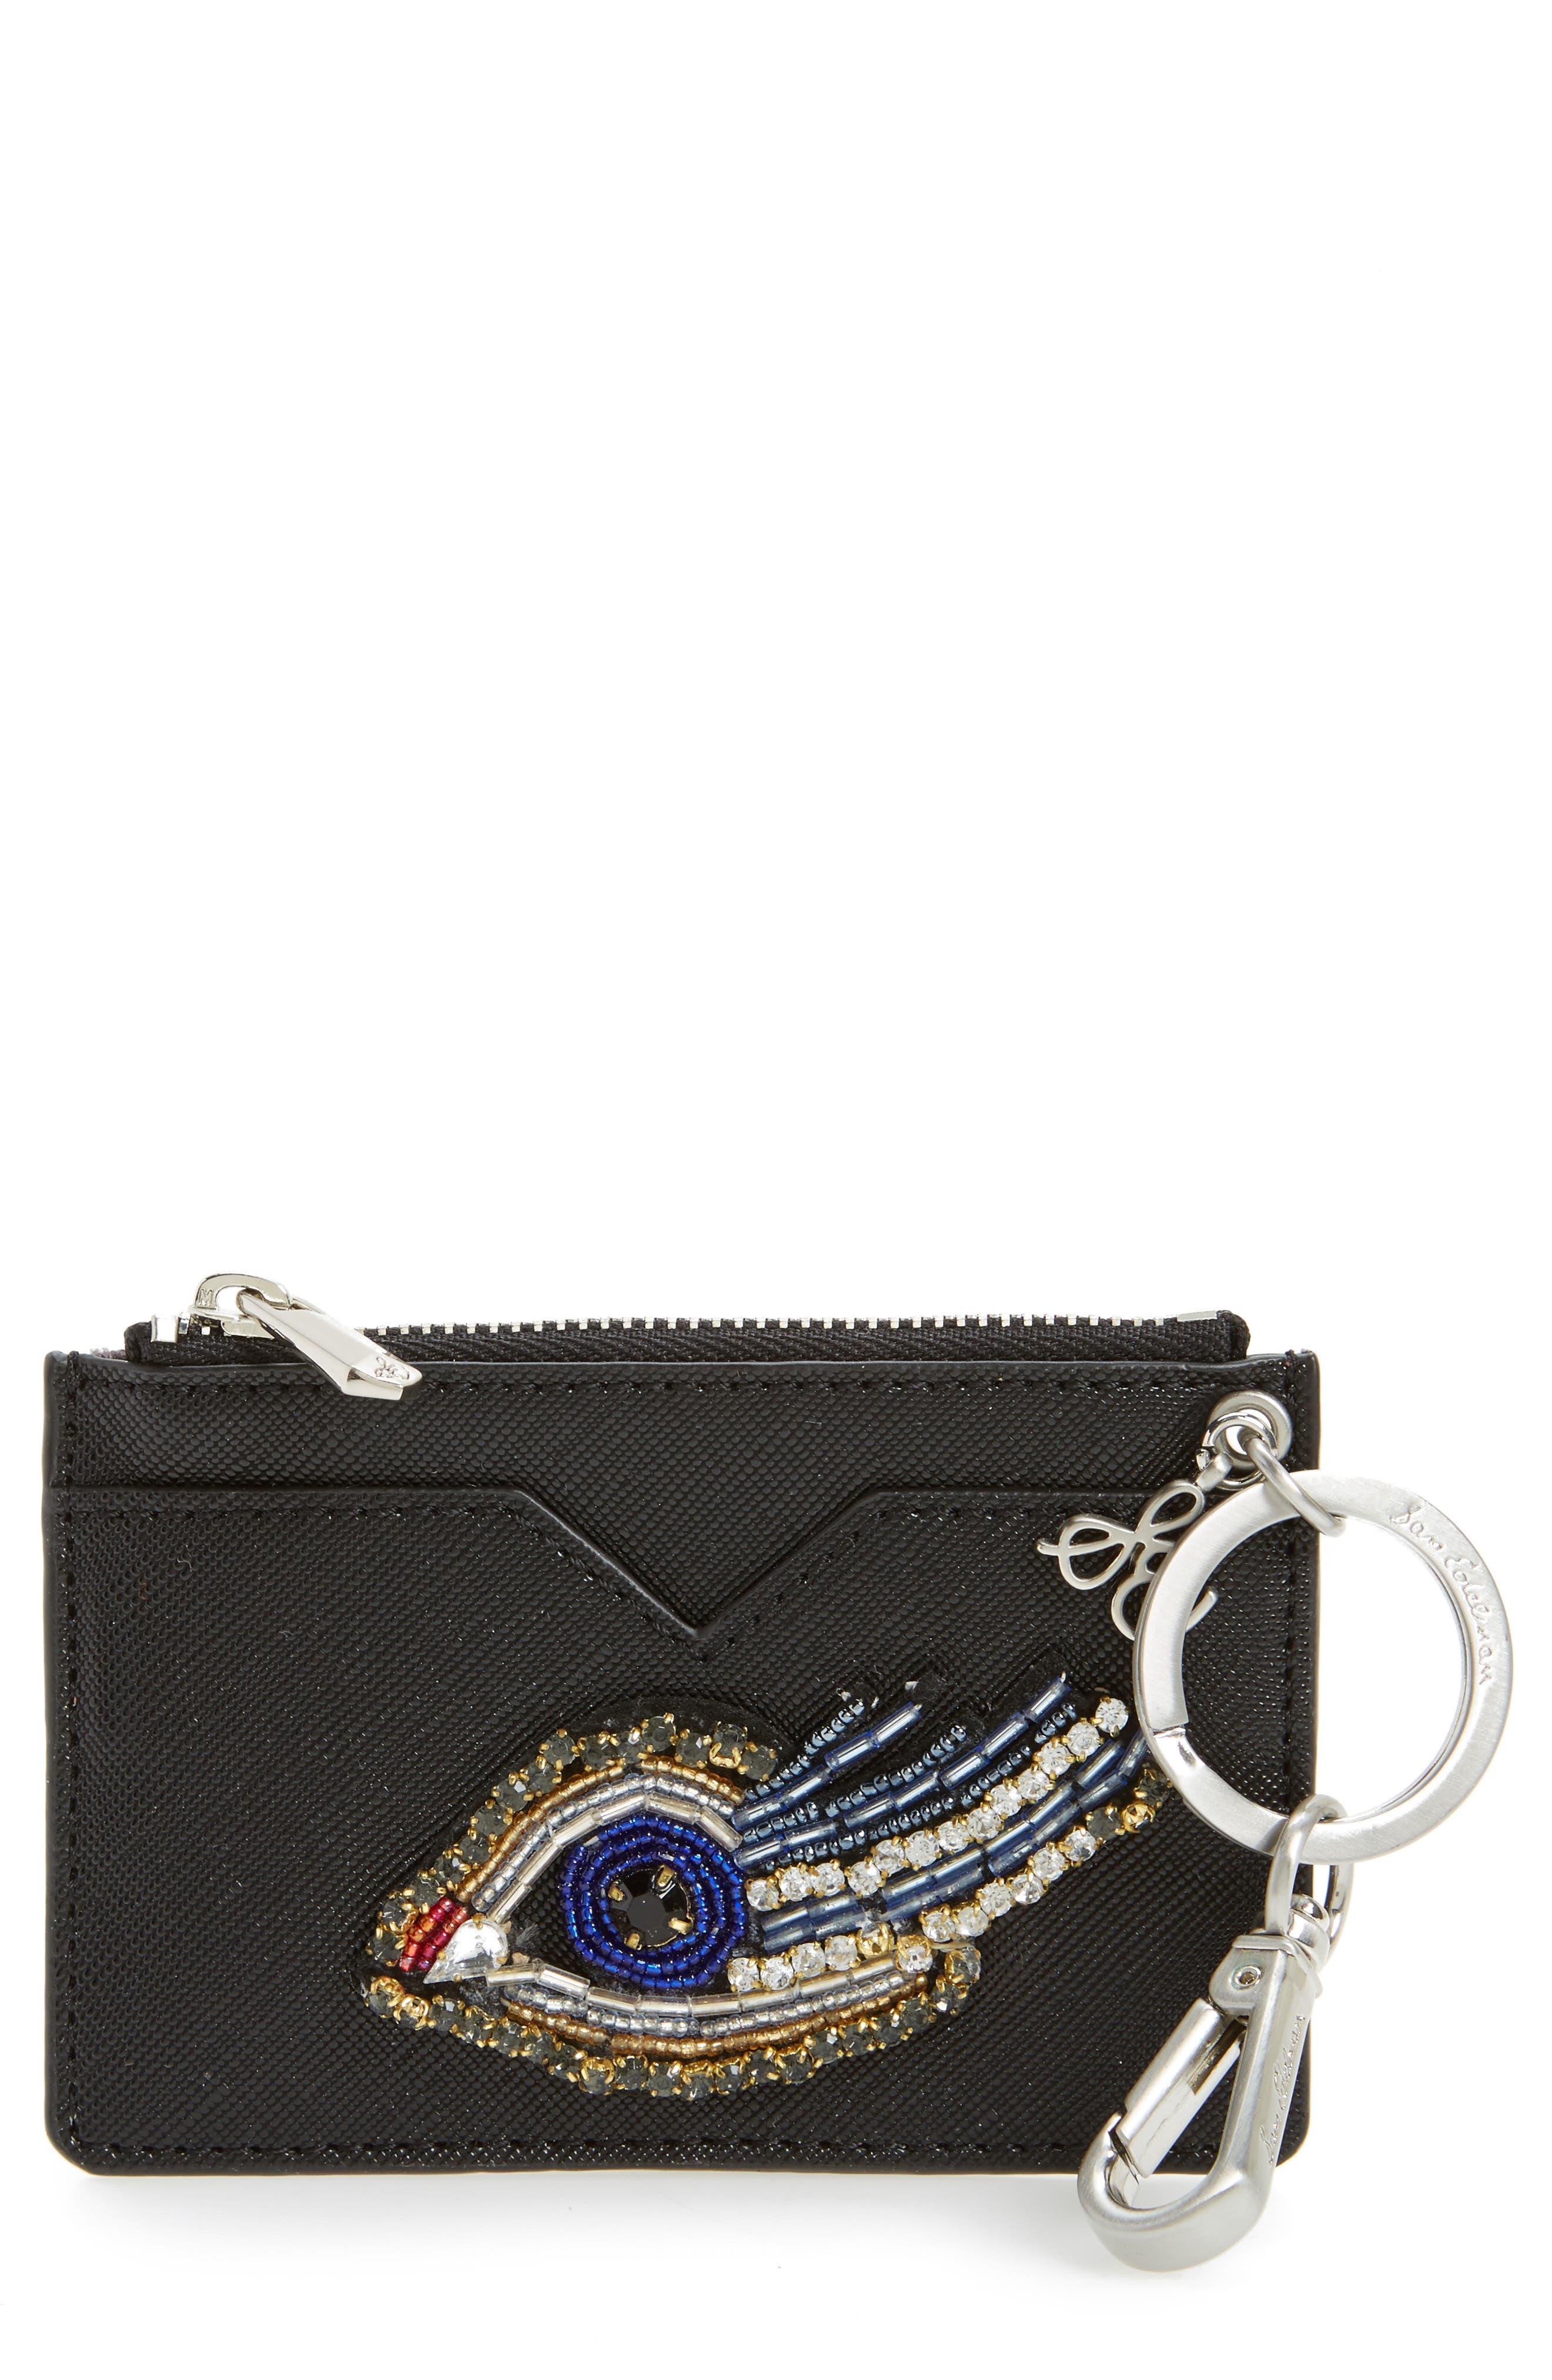 Carter Eye Embellished Faux Leather Card Case,                             Main thumbnail 1, color,                             001